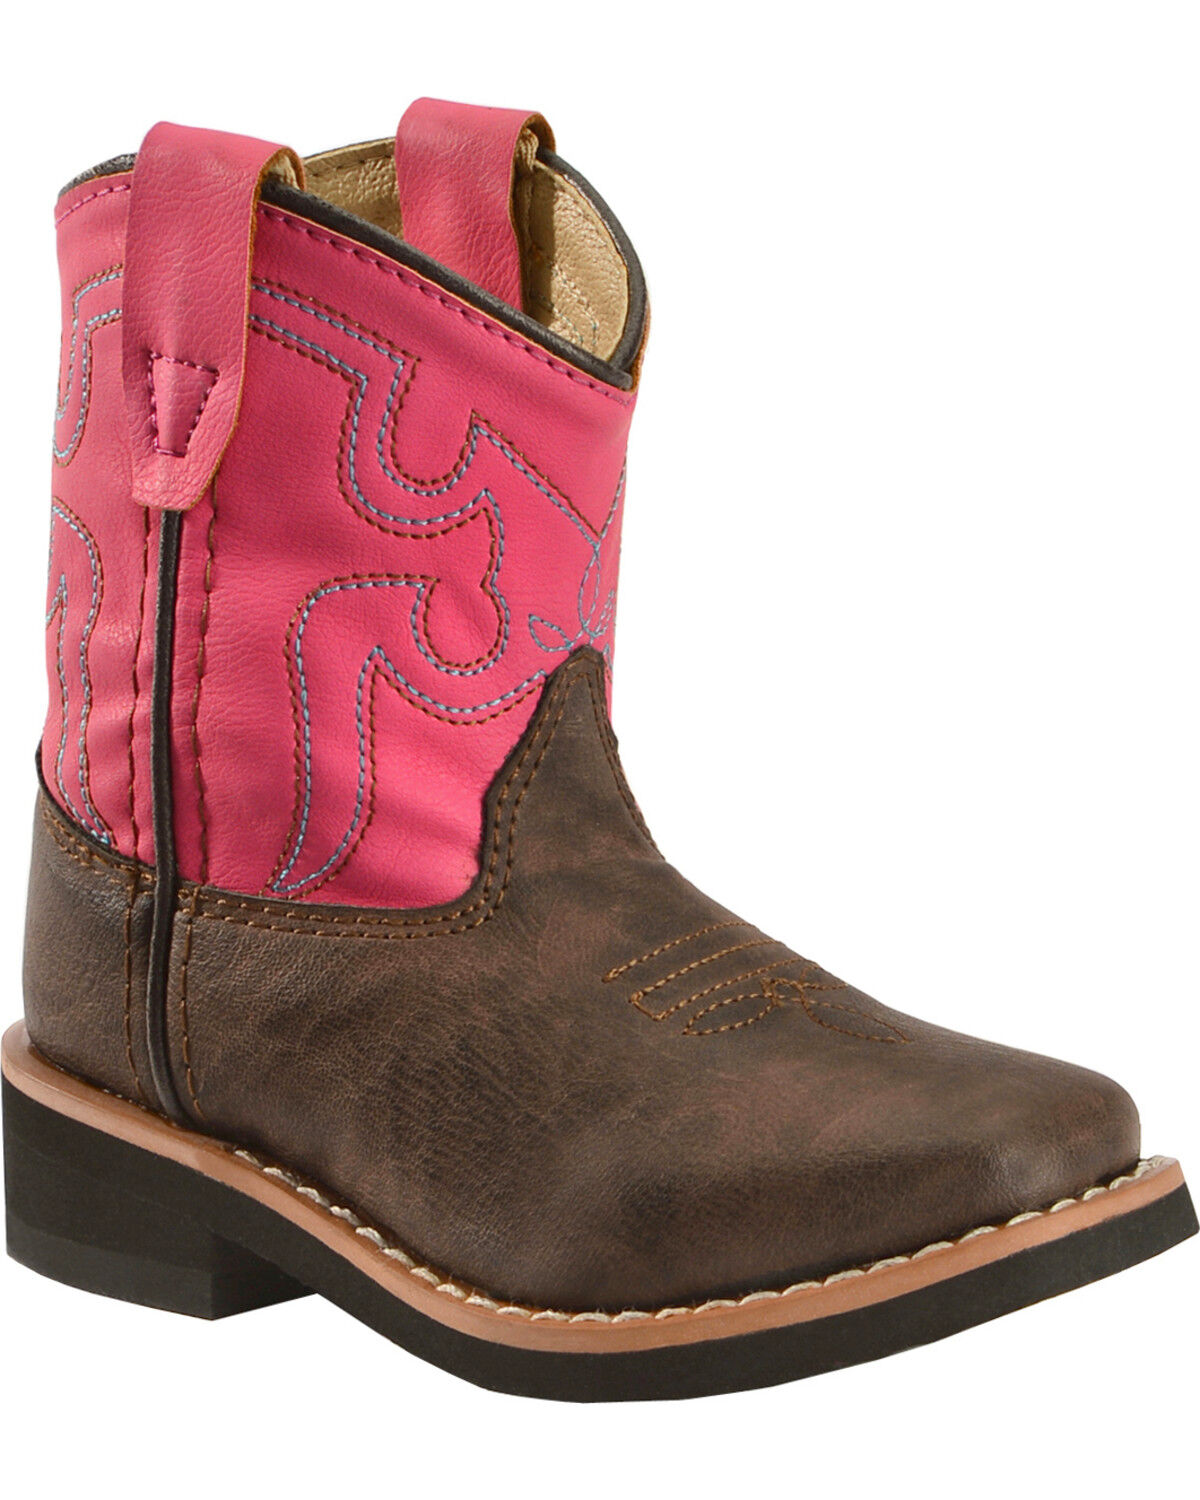 NEW Baby Toddler Girls Cowboy Boots Size 2 4 5 6 Cowgirl Ankle Fringe Western